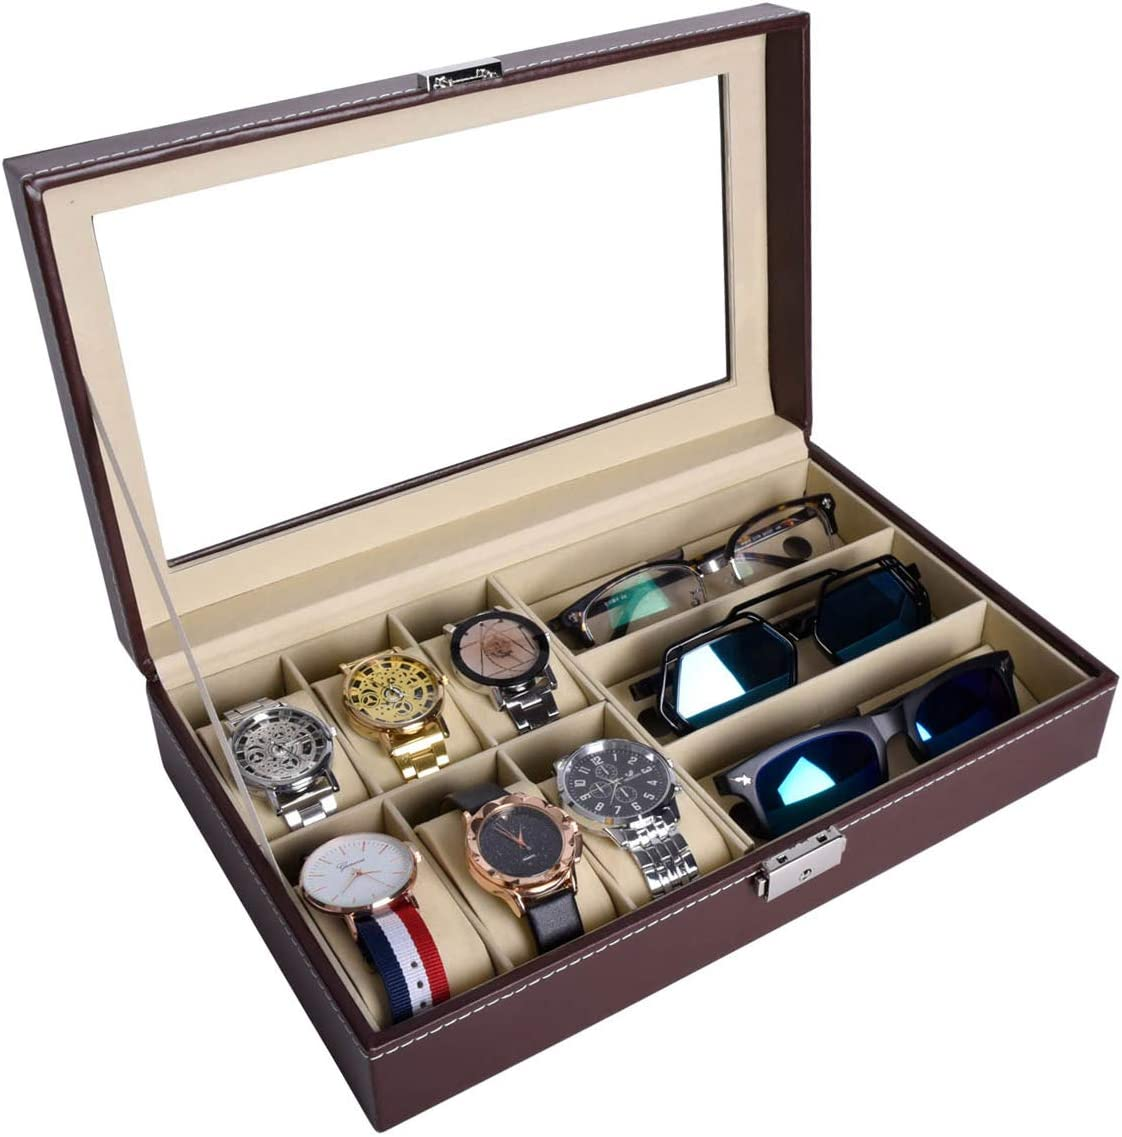 AUTOARK Leather 6 Watch Box Jewelry Case and 3 Piece Eyeglasses Storage and Sunglass Glasses Display Case Organizer,Brown,AW-020